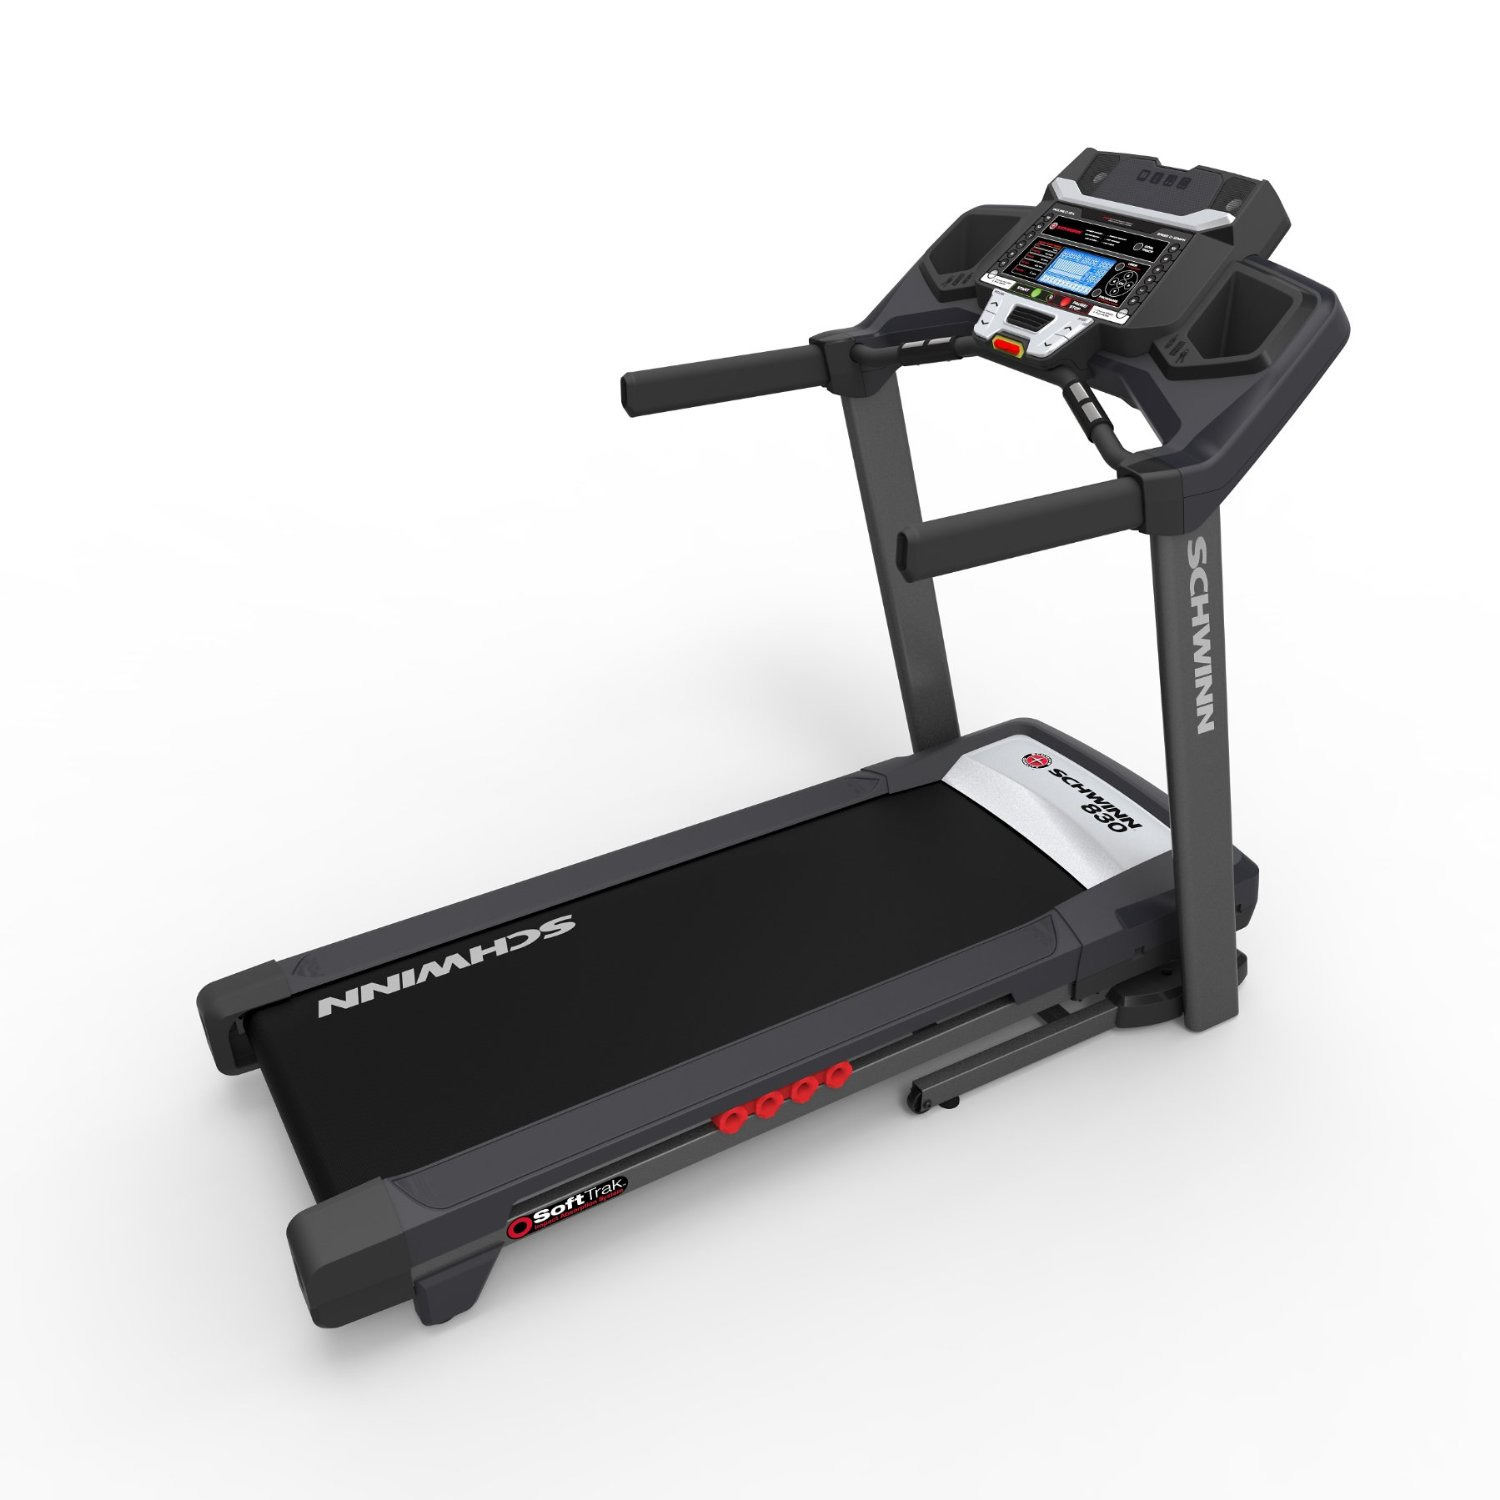 Schwinn 830 Treadmill review